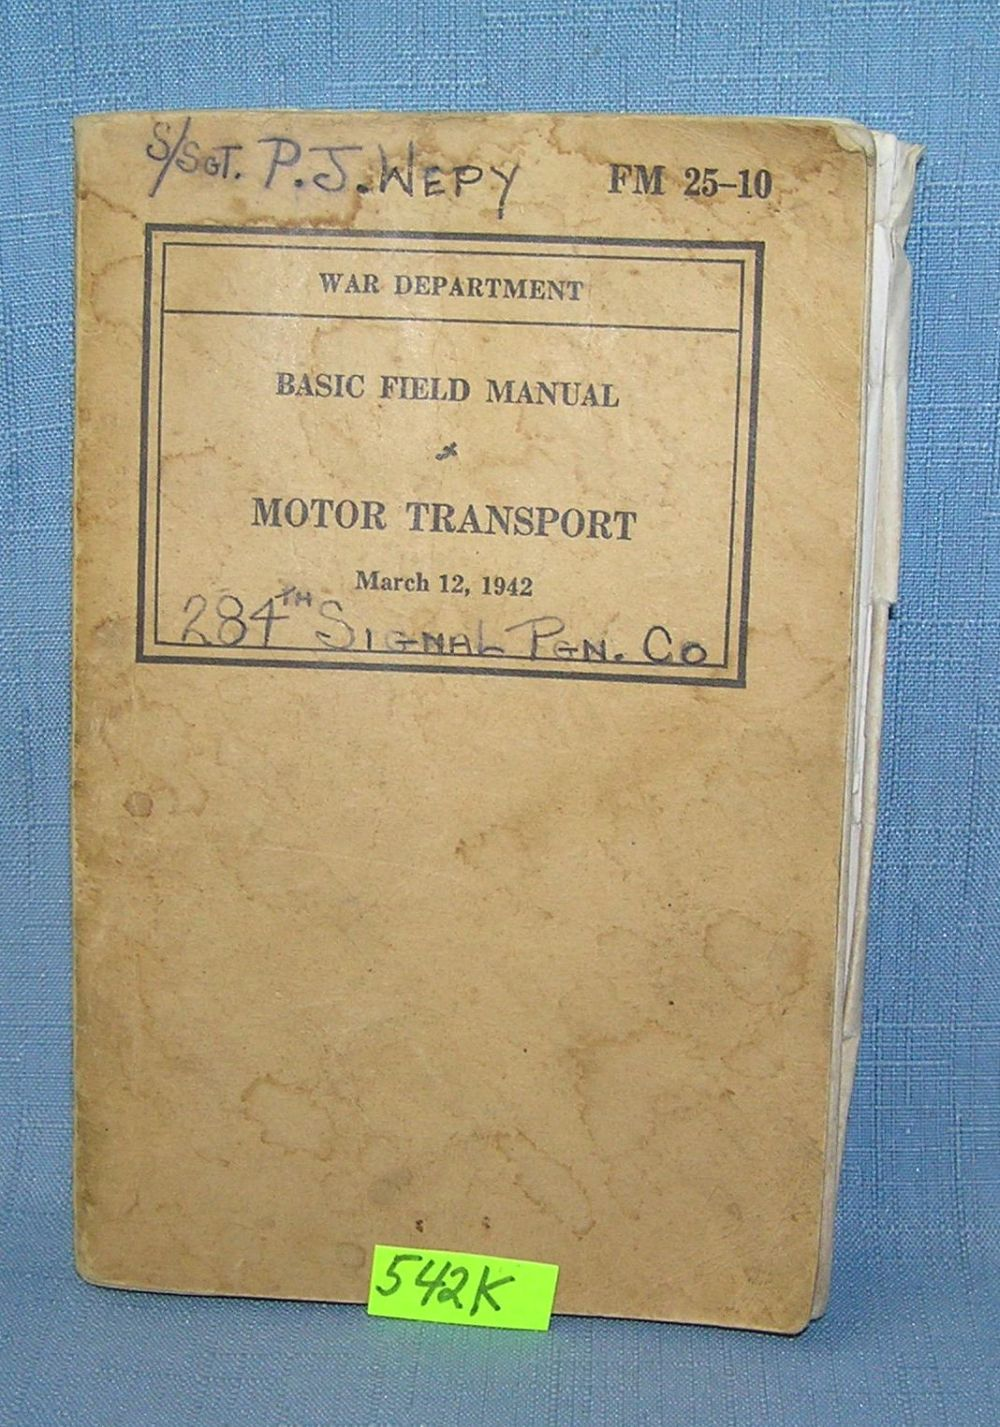 WWII MOTOR TRANSPORT BOOK